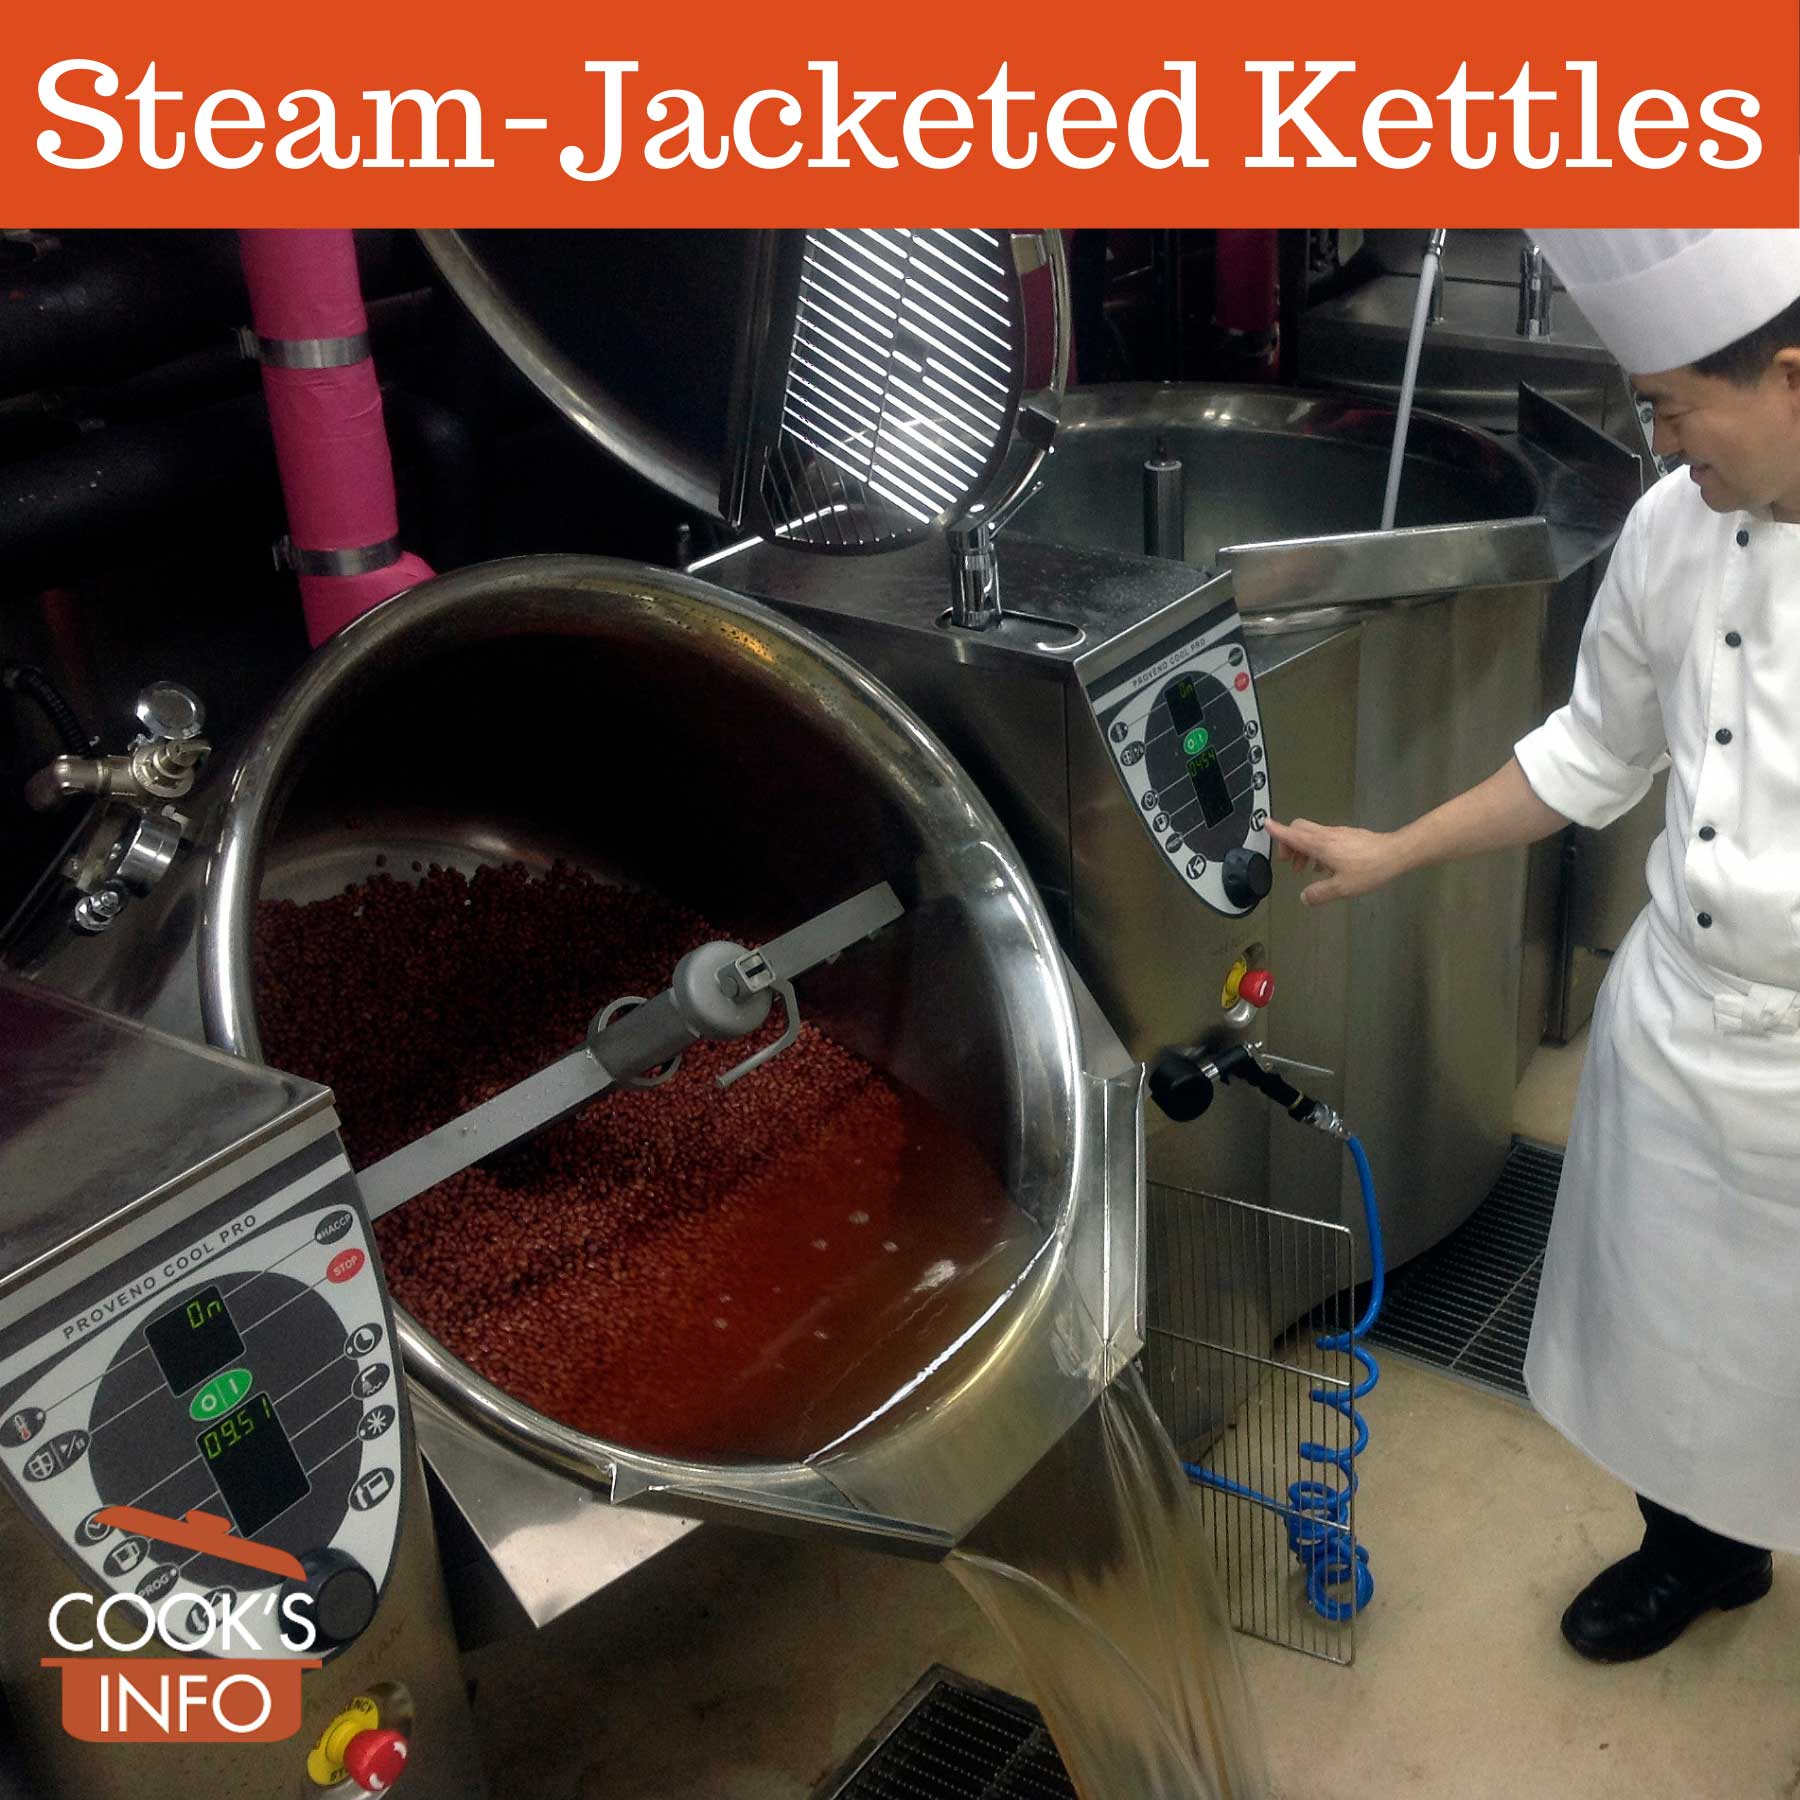 Cooking red beans in a steam-jacketed kettle